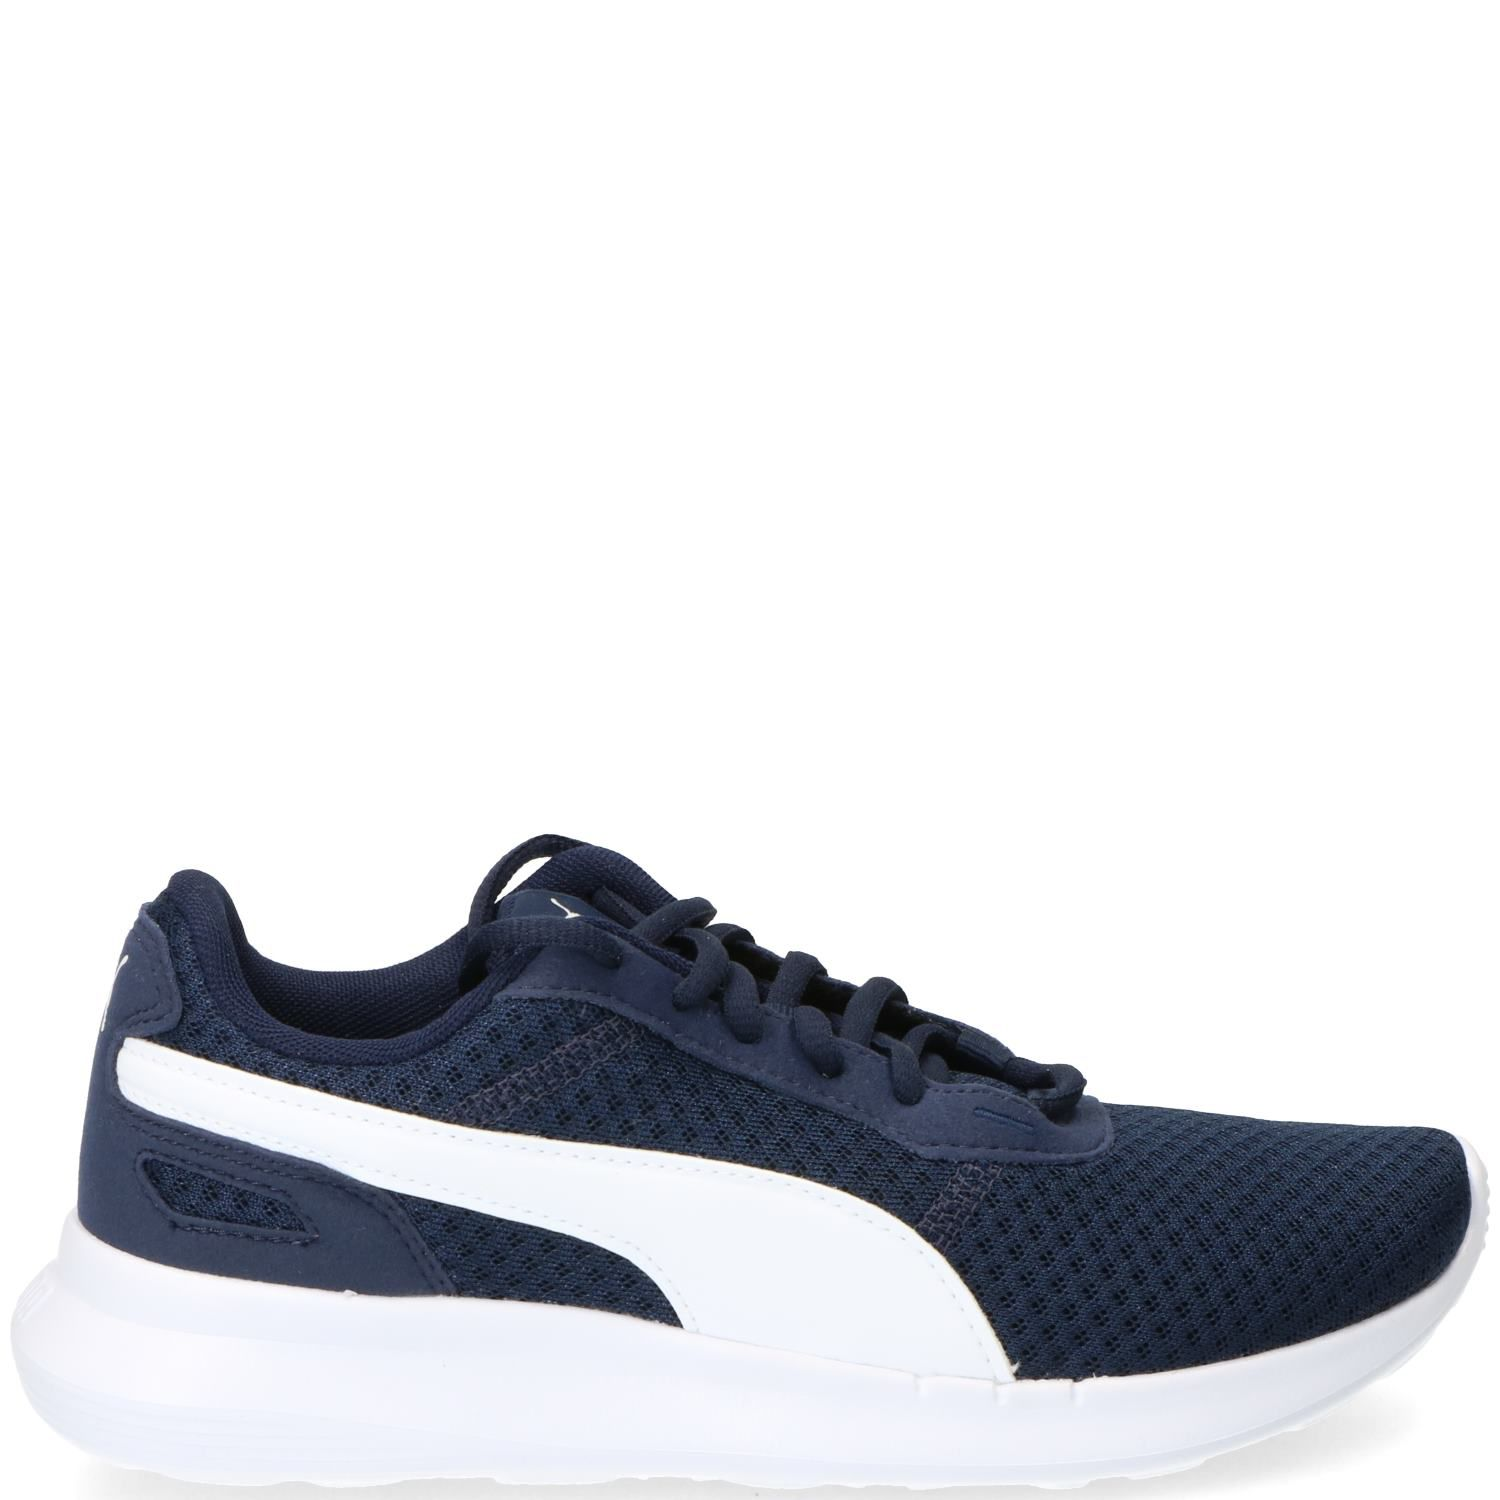 Puma ST Active sneakers